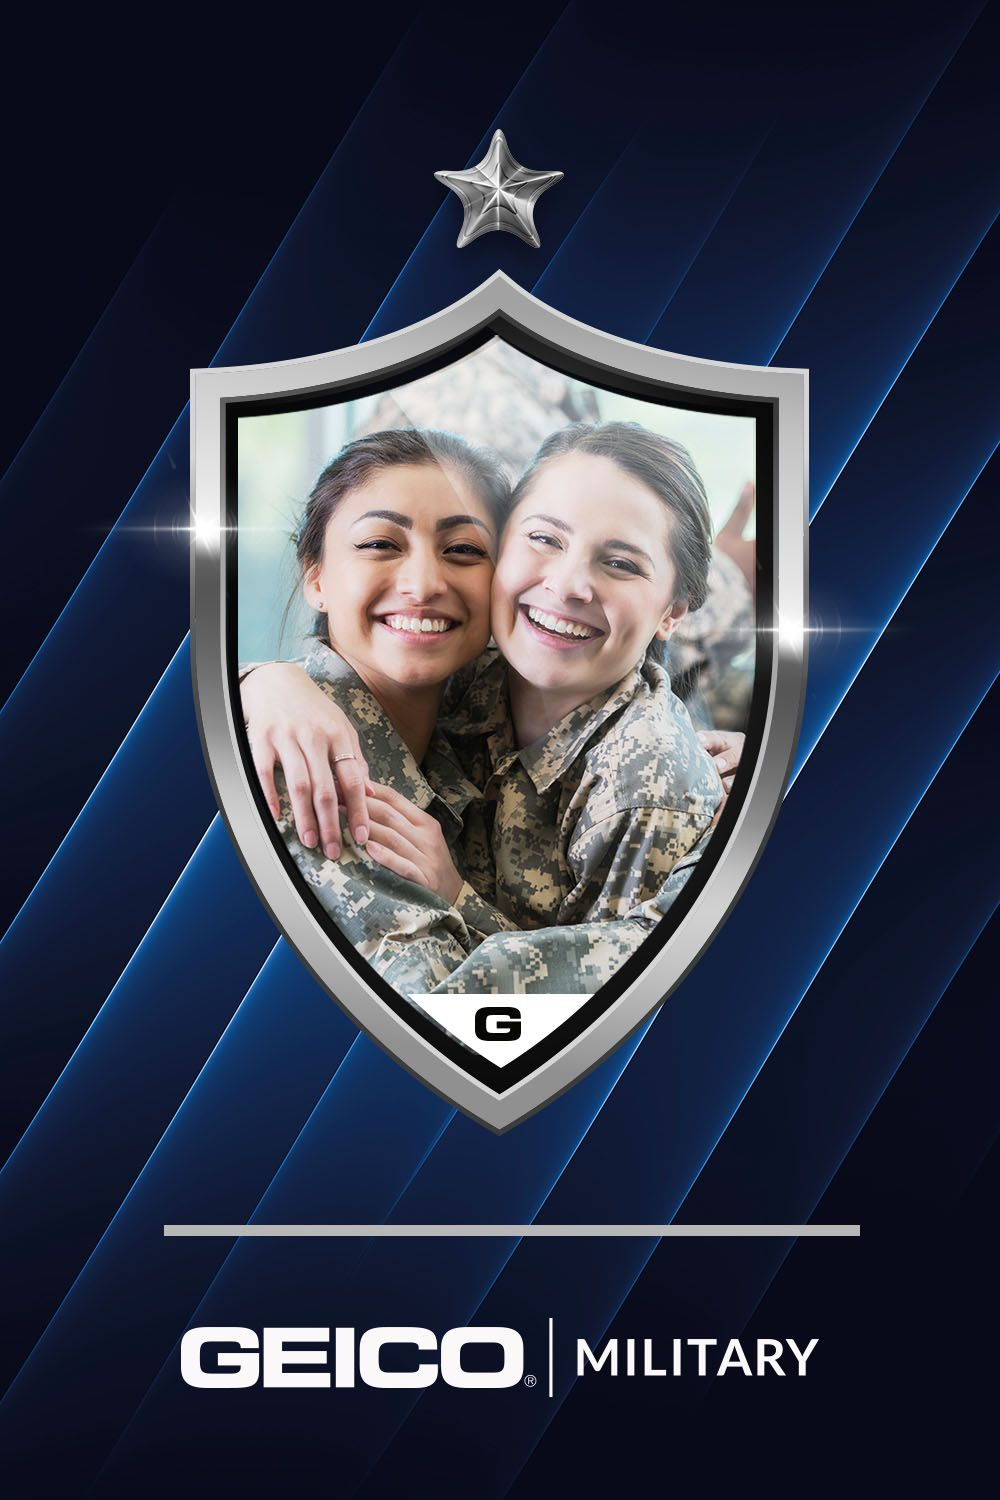 Geico Has Been Helping Military Members Save Money On Their Car Insurance Since 1936 We D Love To Do The In 2020 Car Insurance Military Discounts Geico Car Insurance